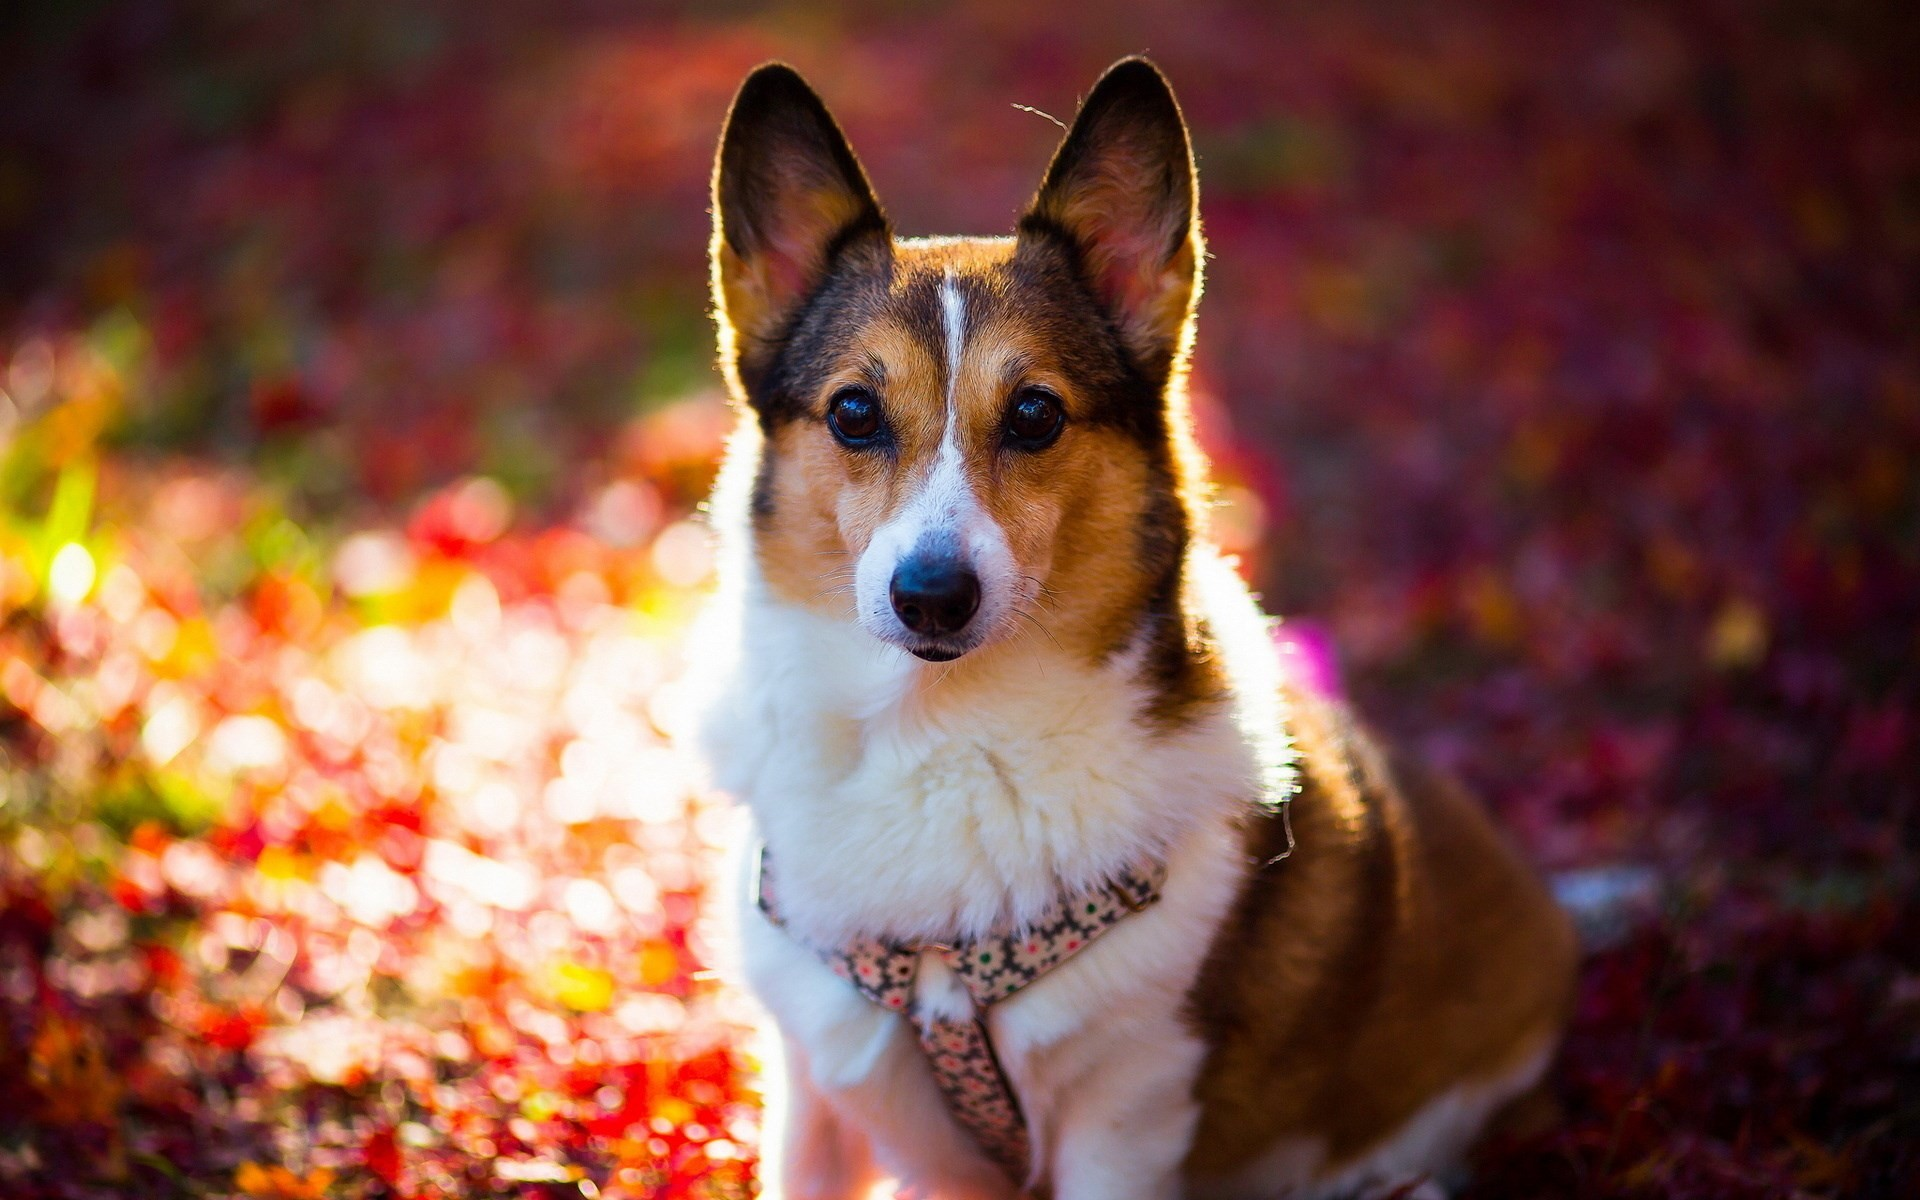 Cute Dog Wallpapers 64 Images